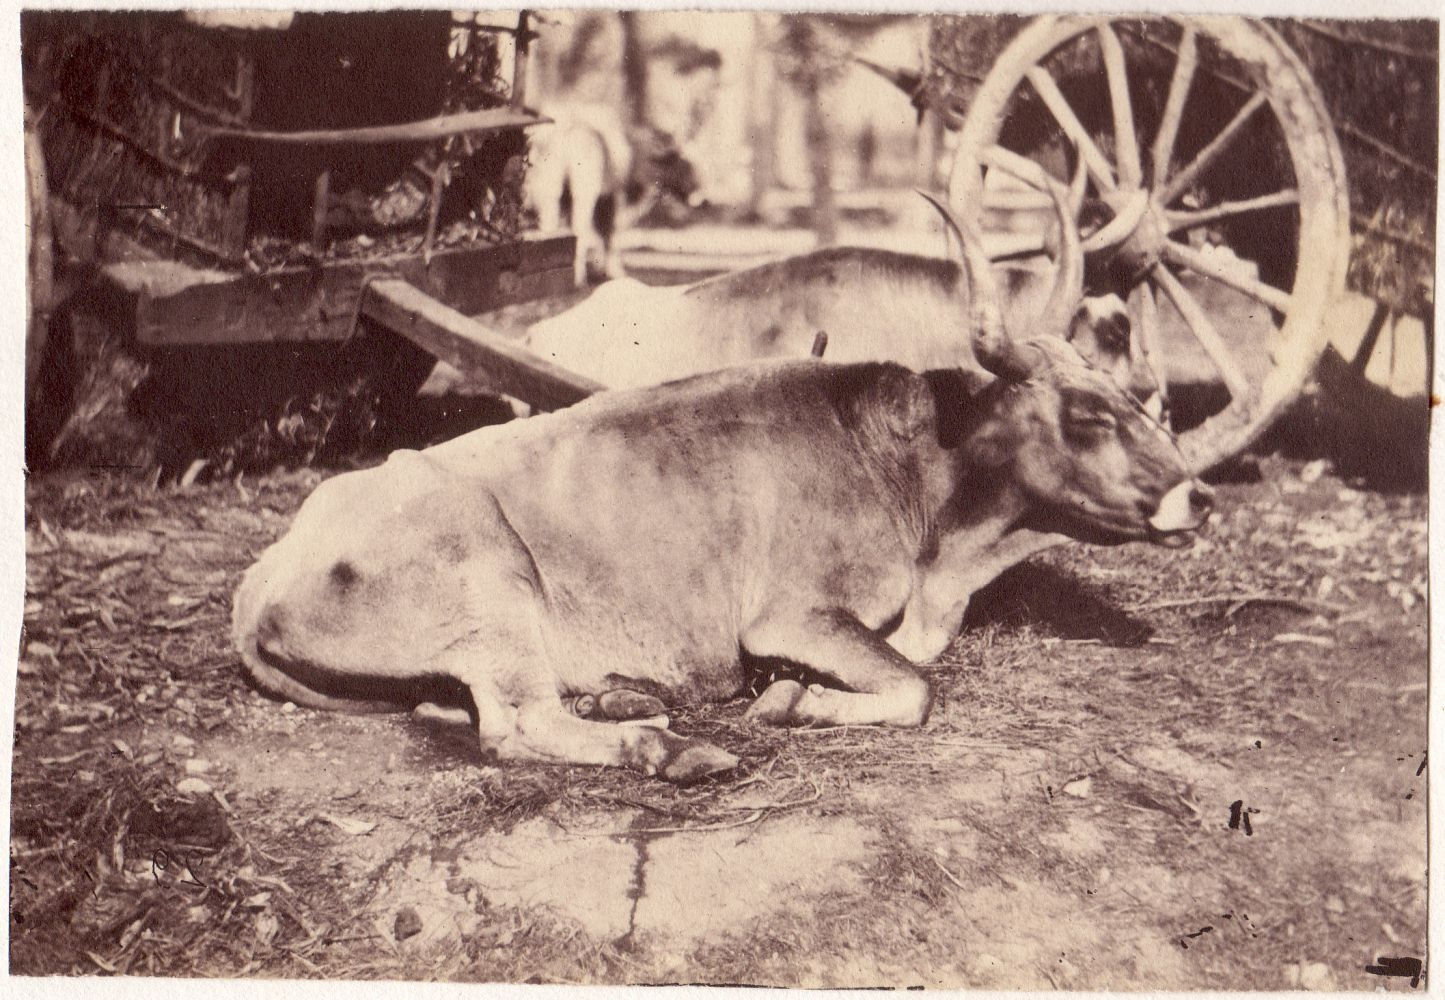 Circle of Giacomo CANEVA (Italian, 1813-1865) Oxen with carts in background, 1850s Coated salt print from a collodion negative 12.0 x 17.4 cm tipped onto original mount